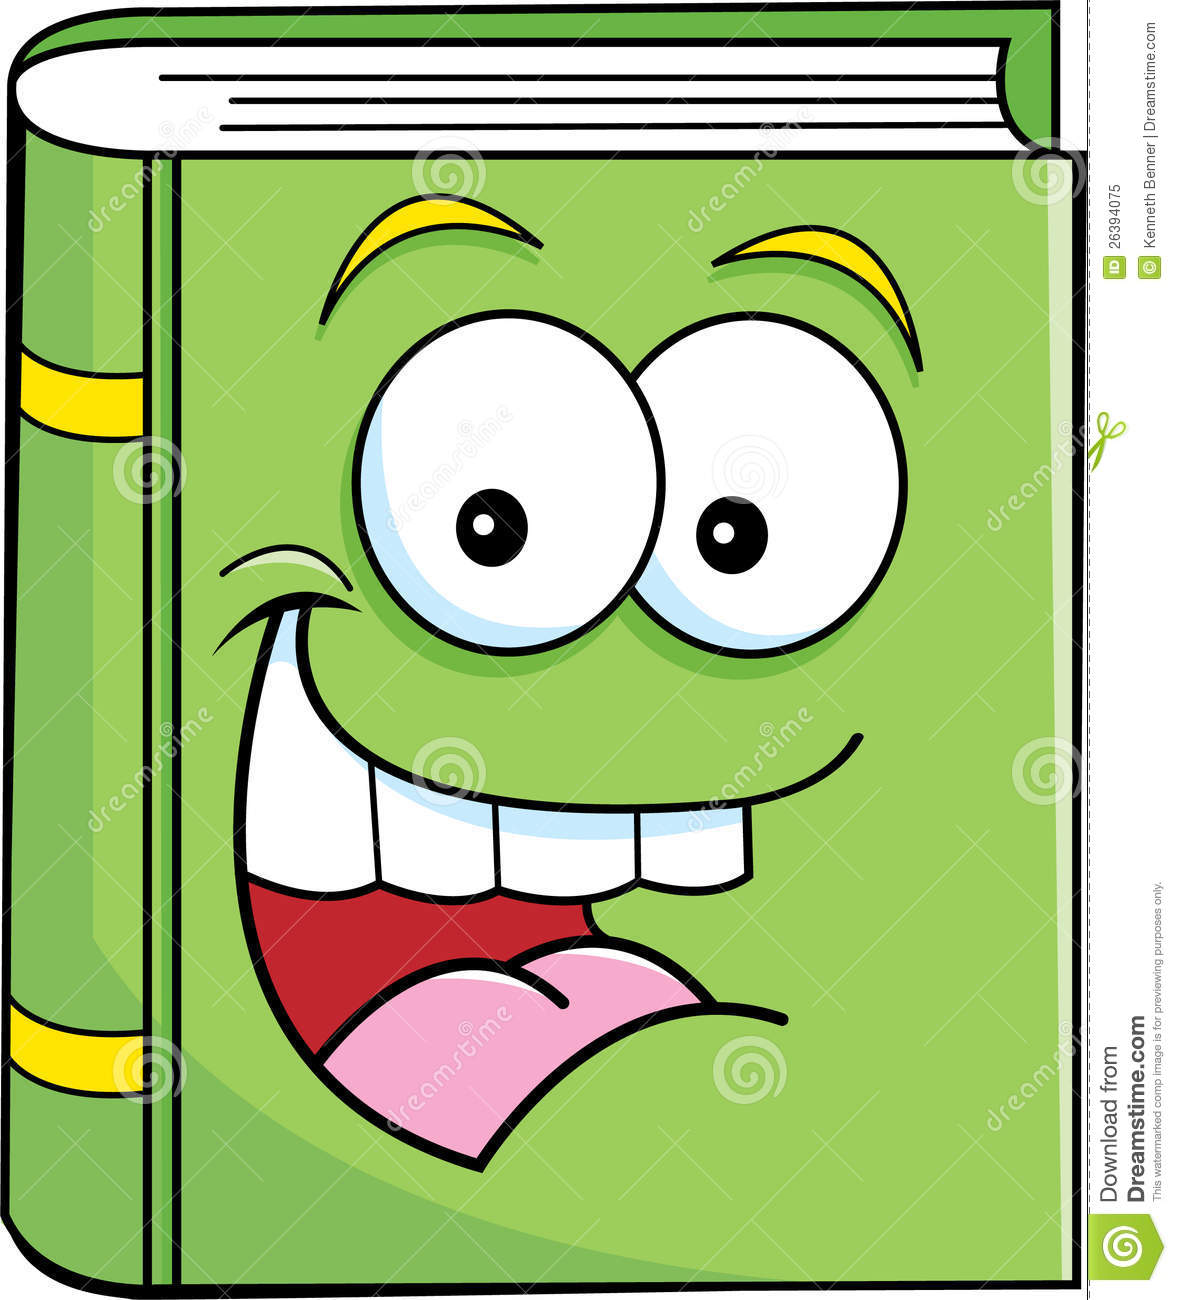 Smiling Book Stock Vector Image Of Smiling Cartoon